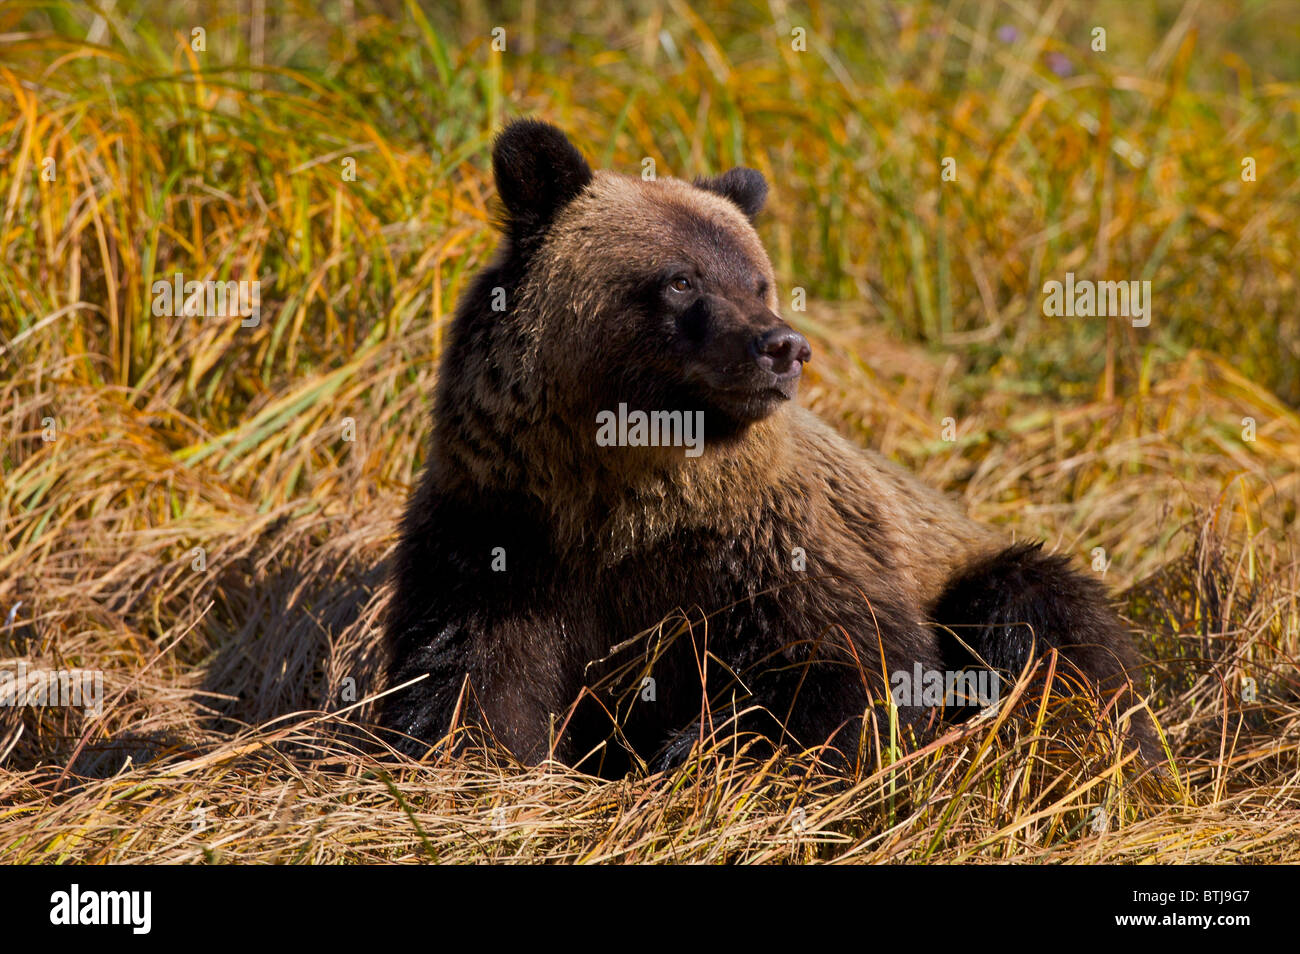 Grizzly bear (Ursus arctos horribilis) British Columbia Canada Stock Photo